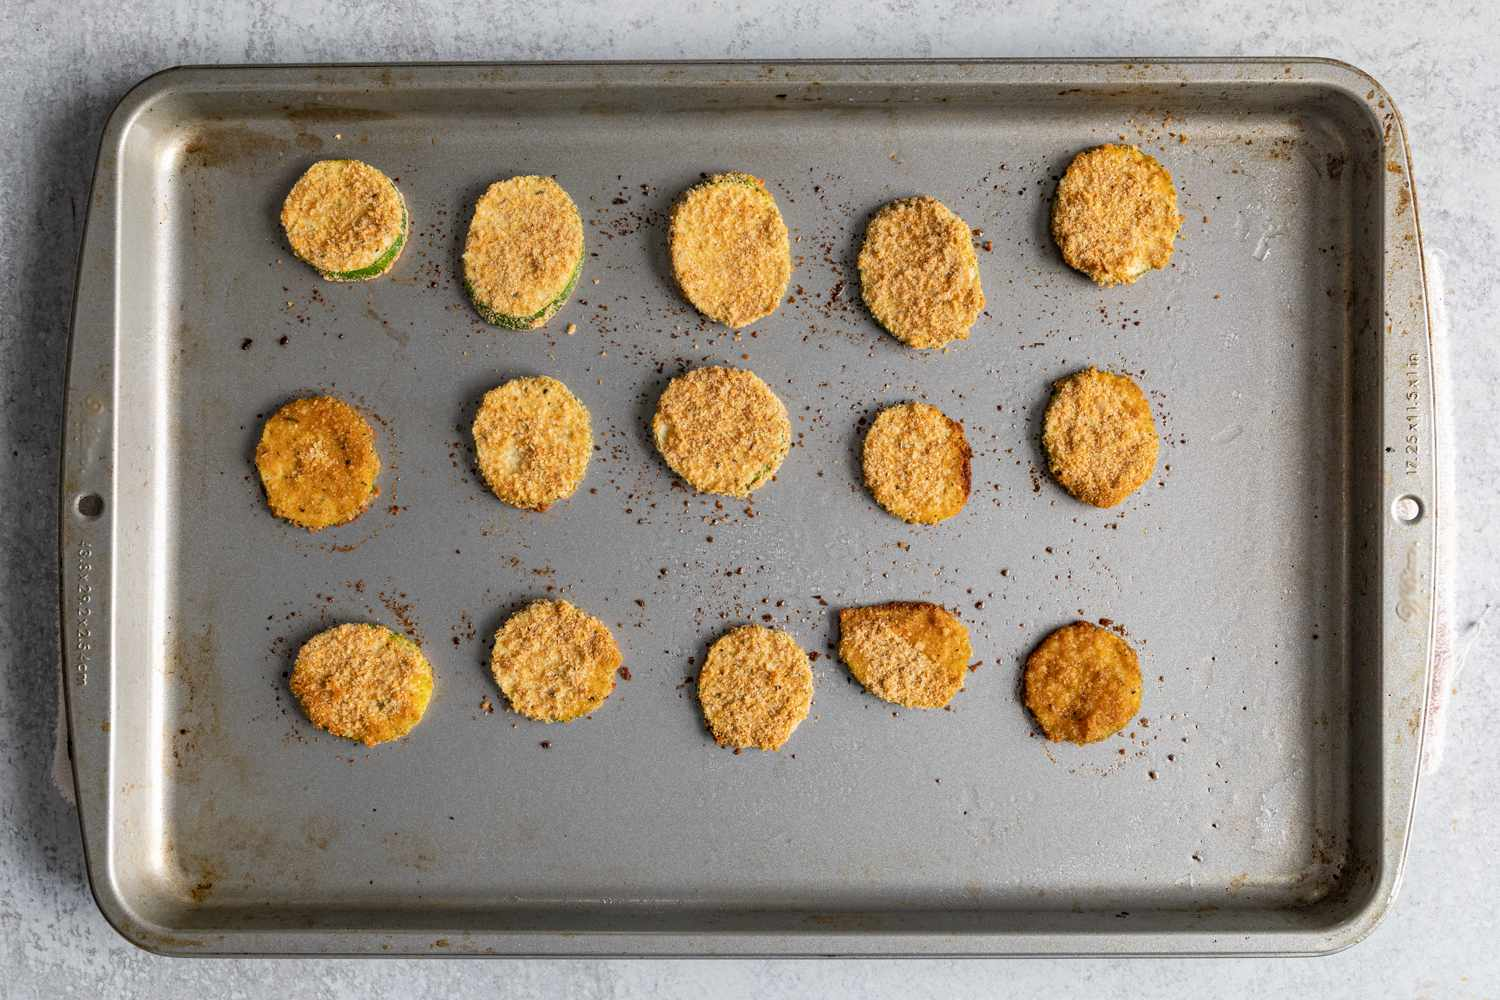 baked breaded zucchini pieces on a baking sheet